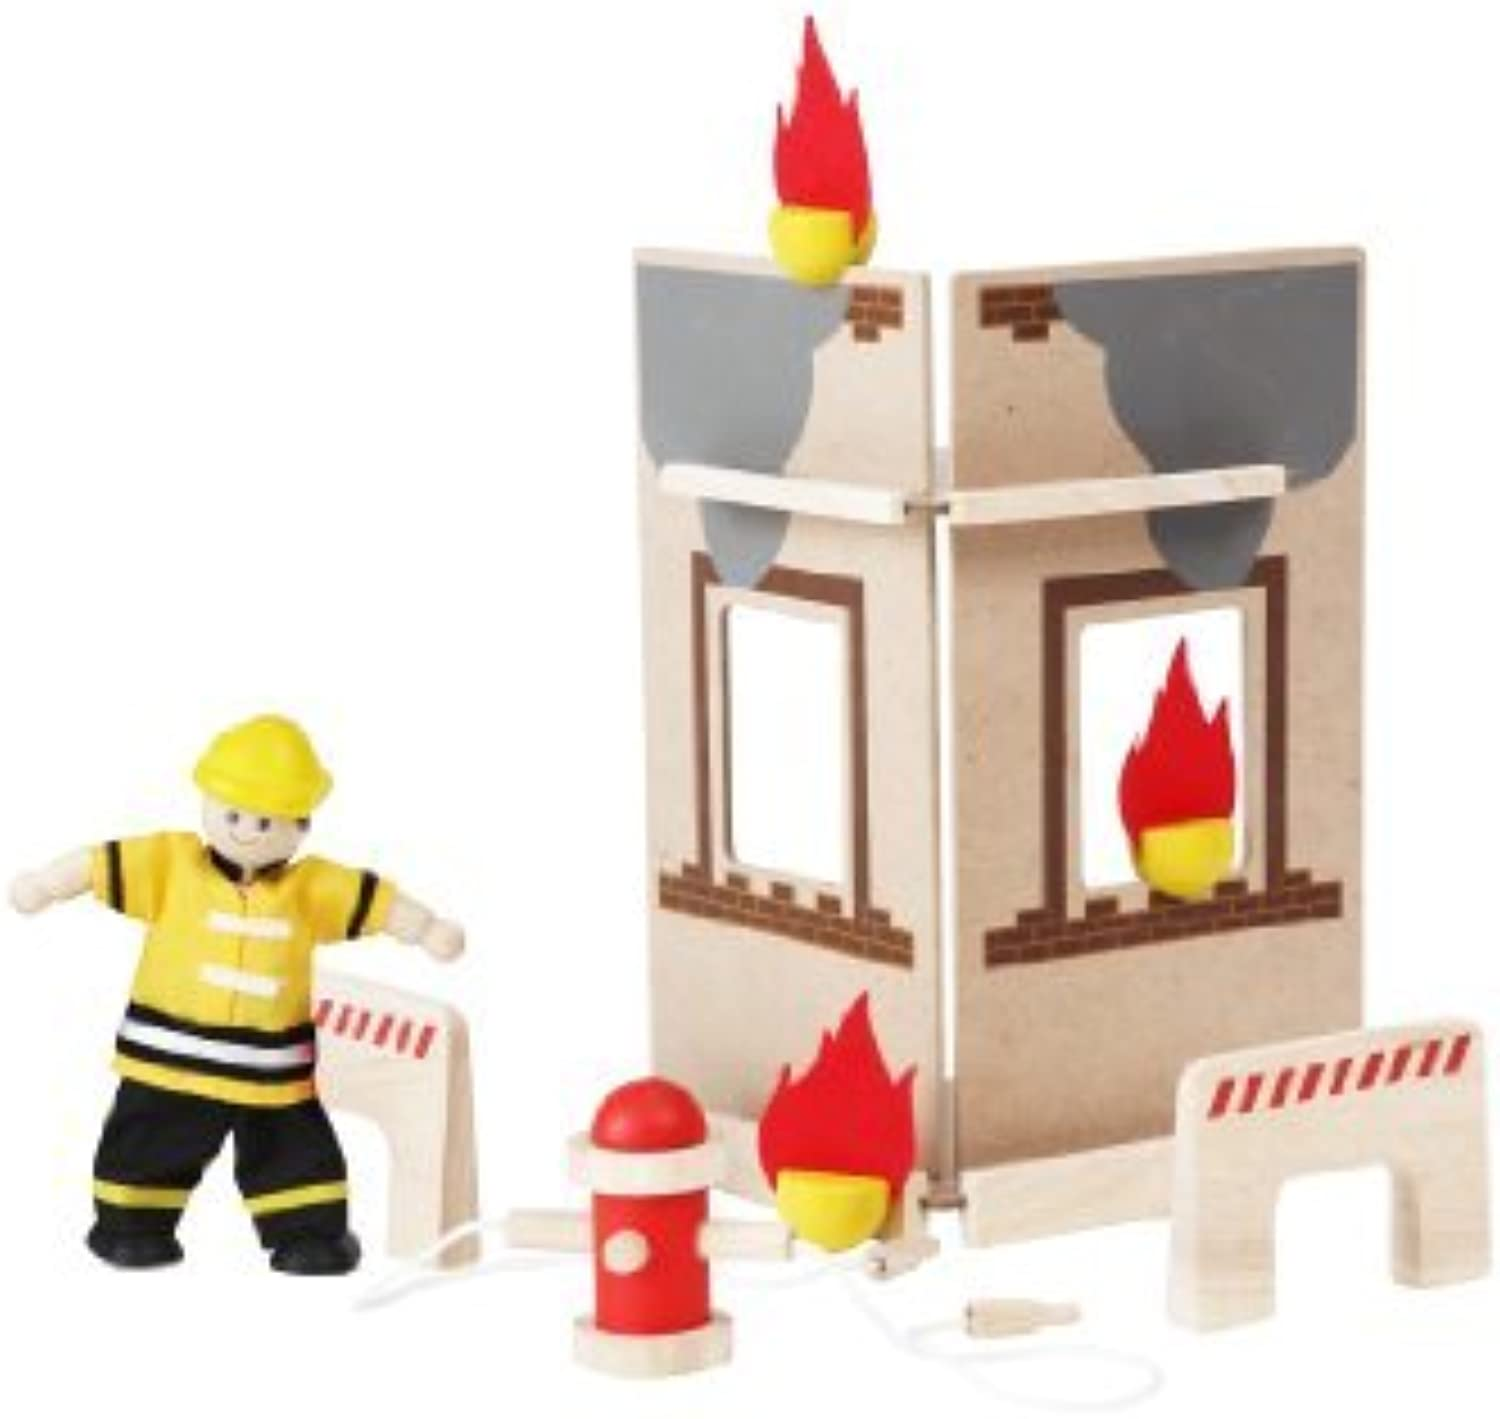 PlanToys PlanActivity Fire Engine Accessories by PlanToys